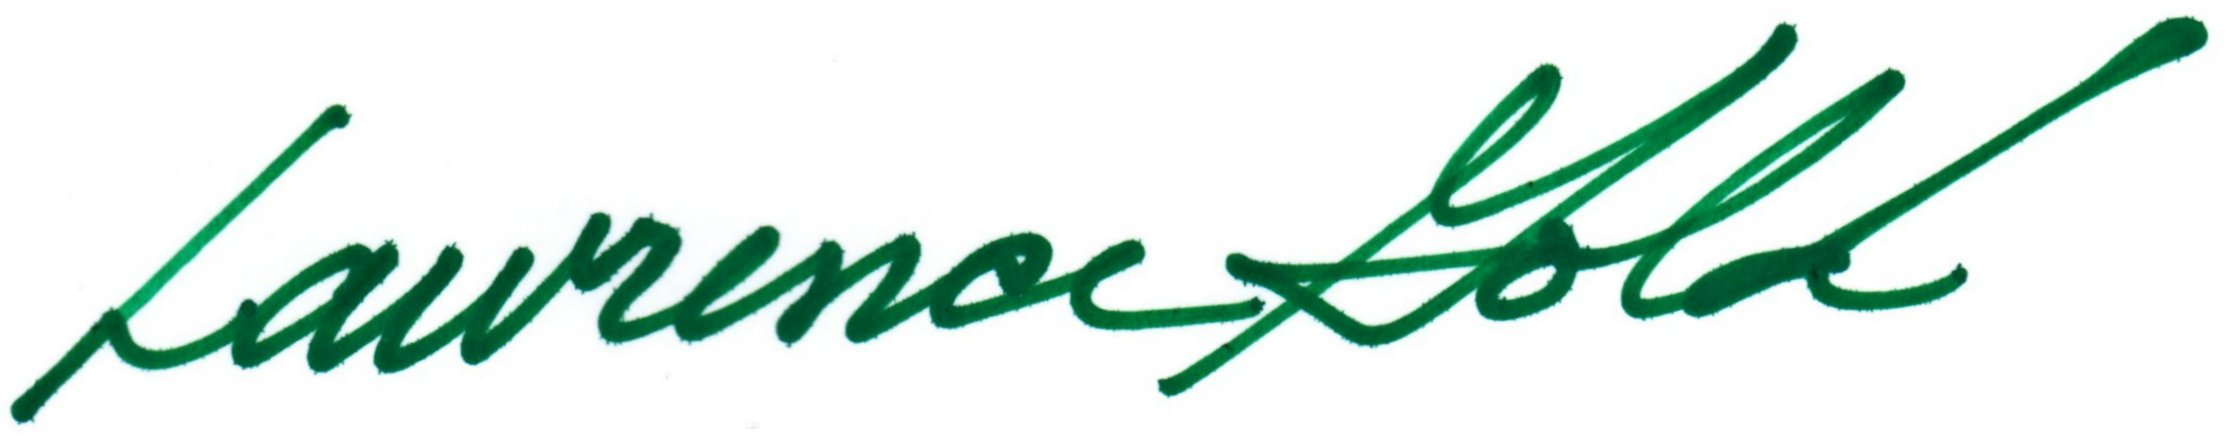 Lawrence Gold's signature